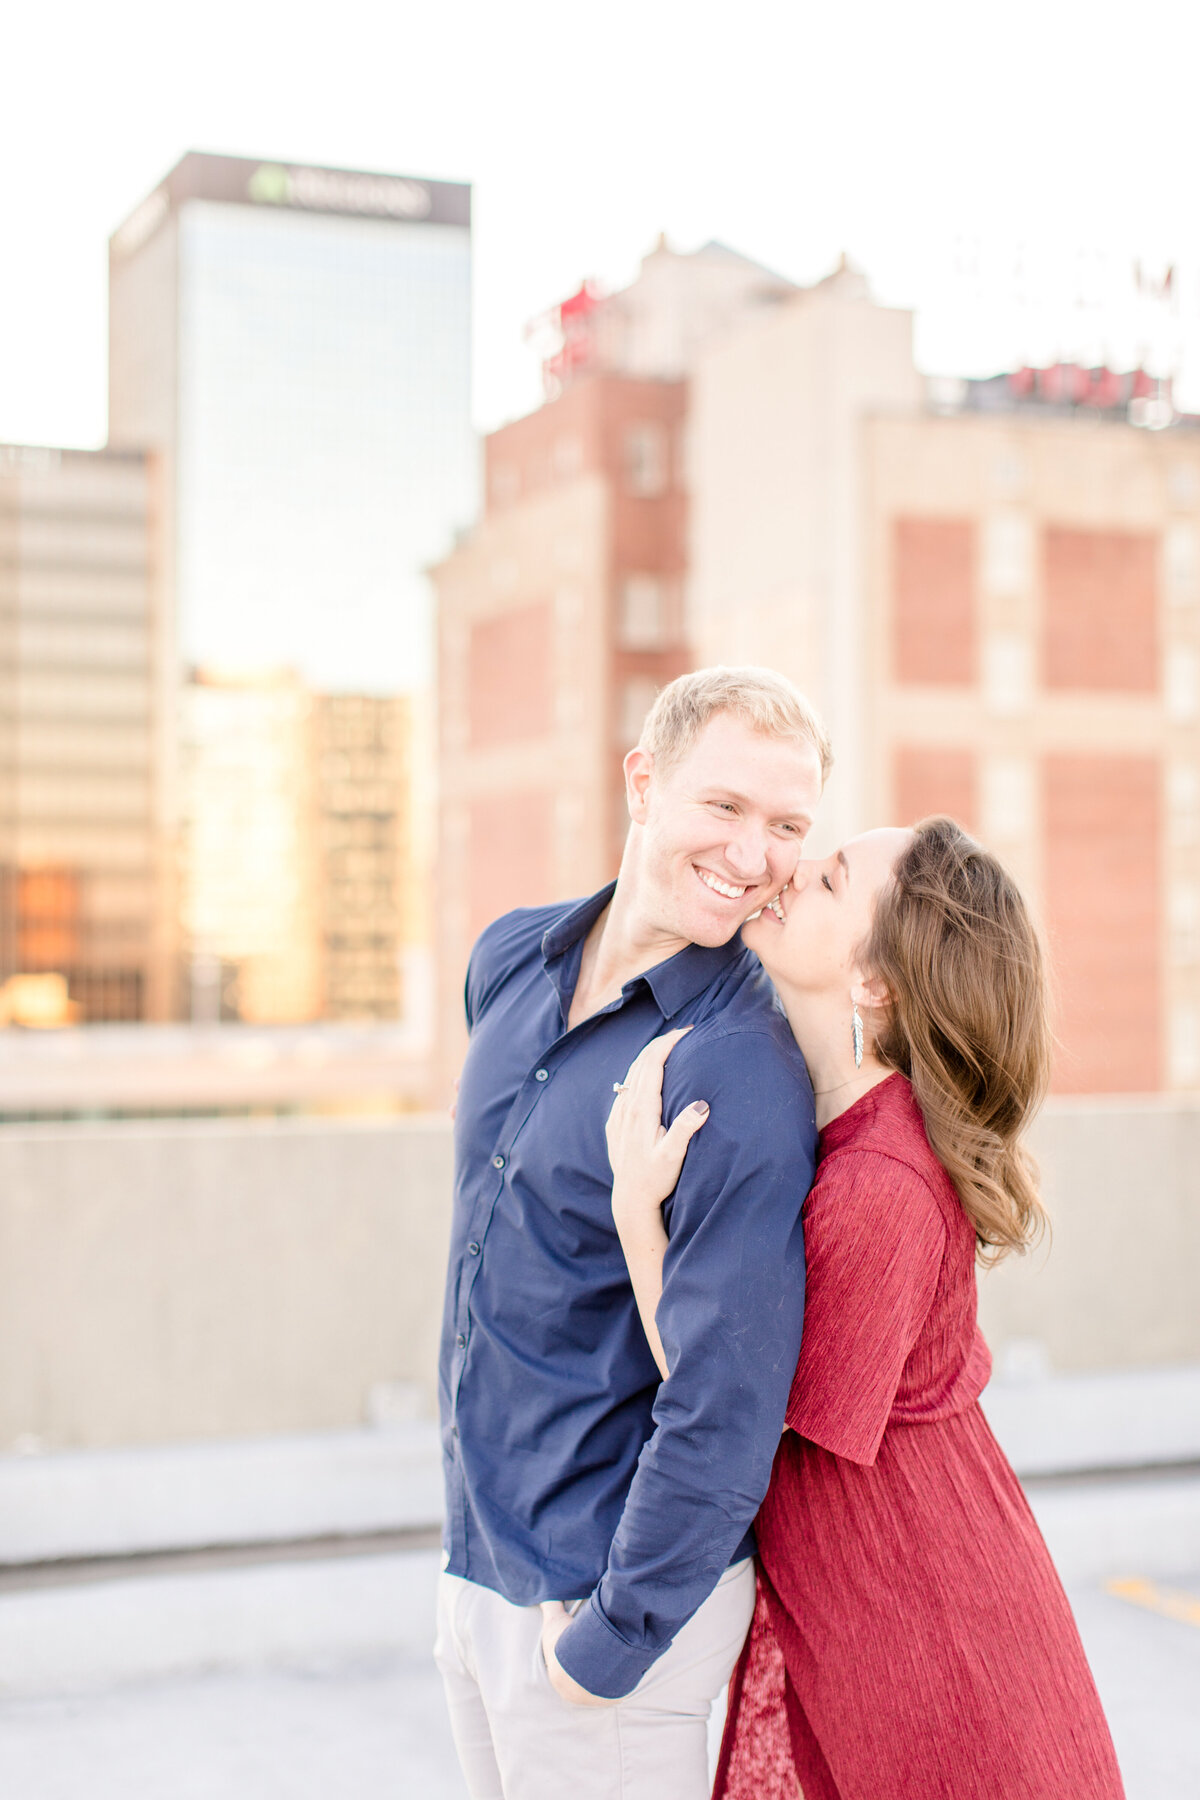 Birmingham, Alabama Wedding & Engagement Photographers - Katie & Alec Photography 38